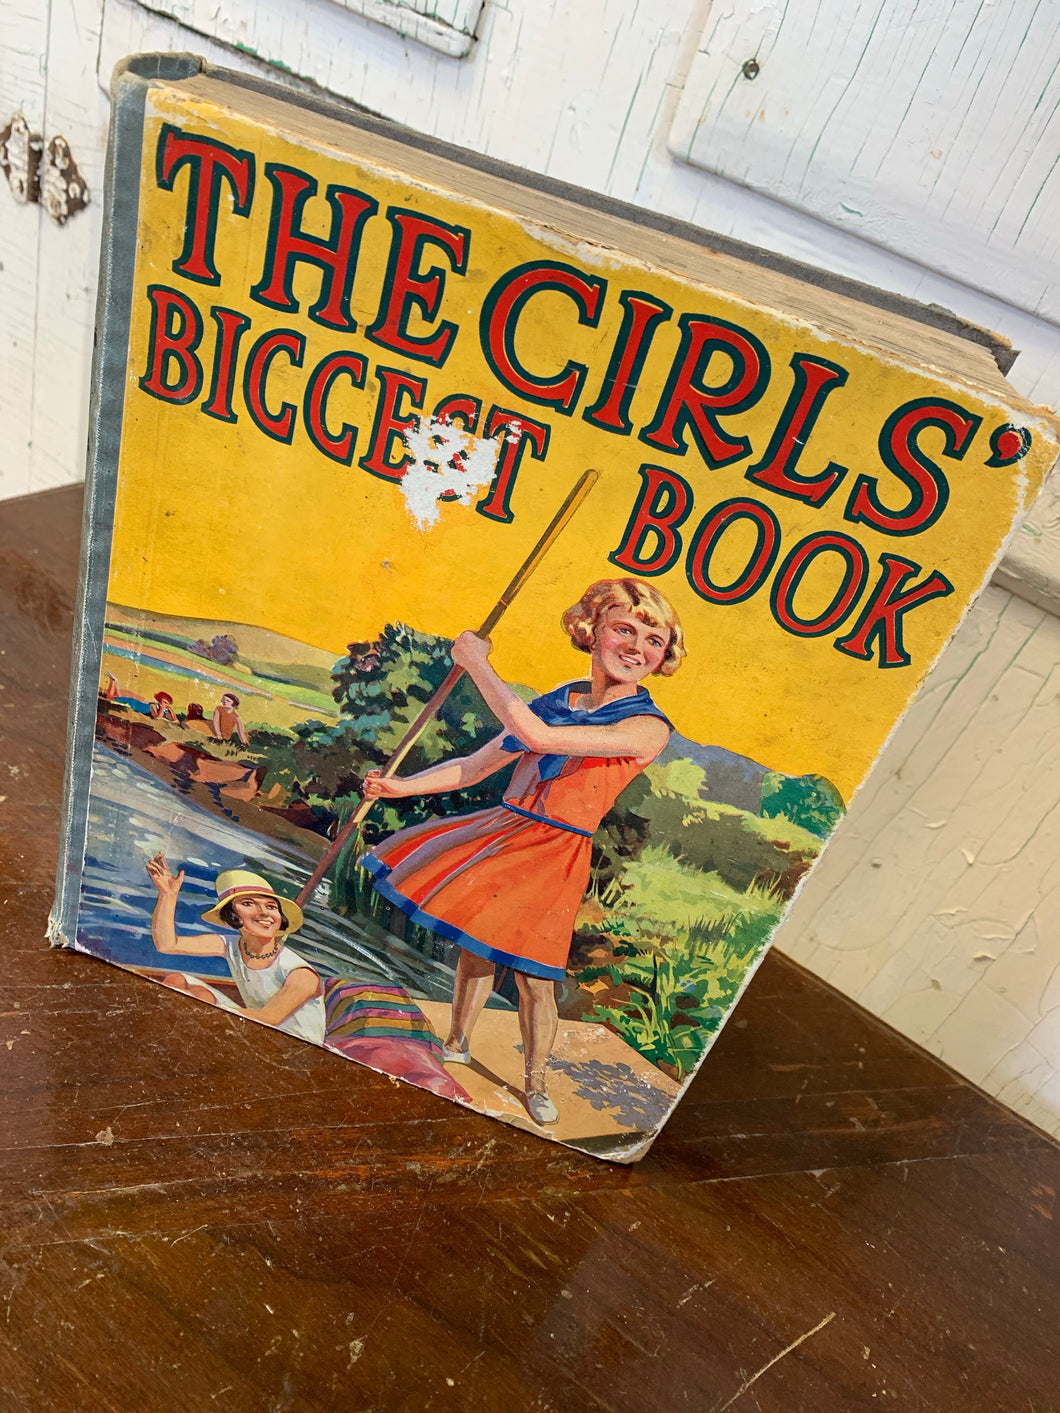 The Girls Biggest Book